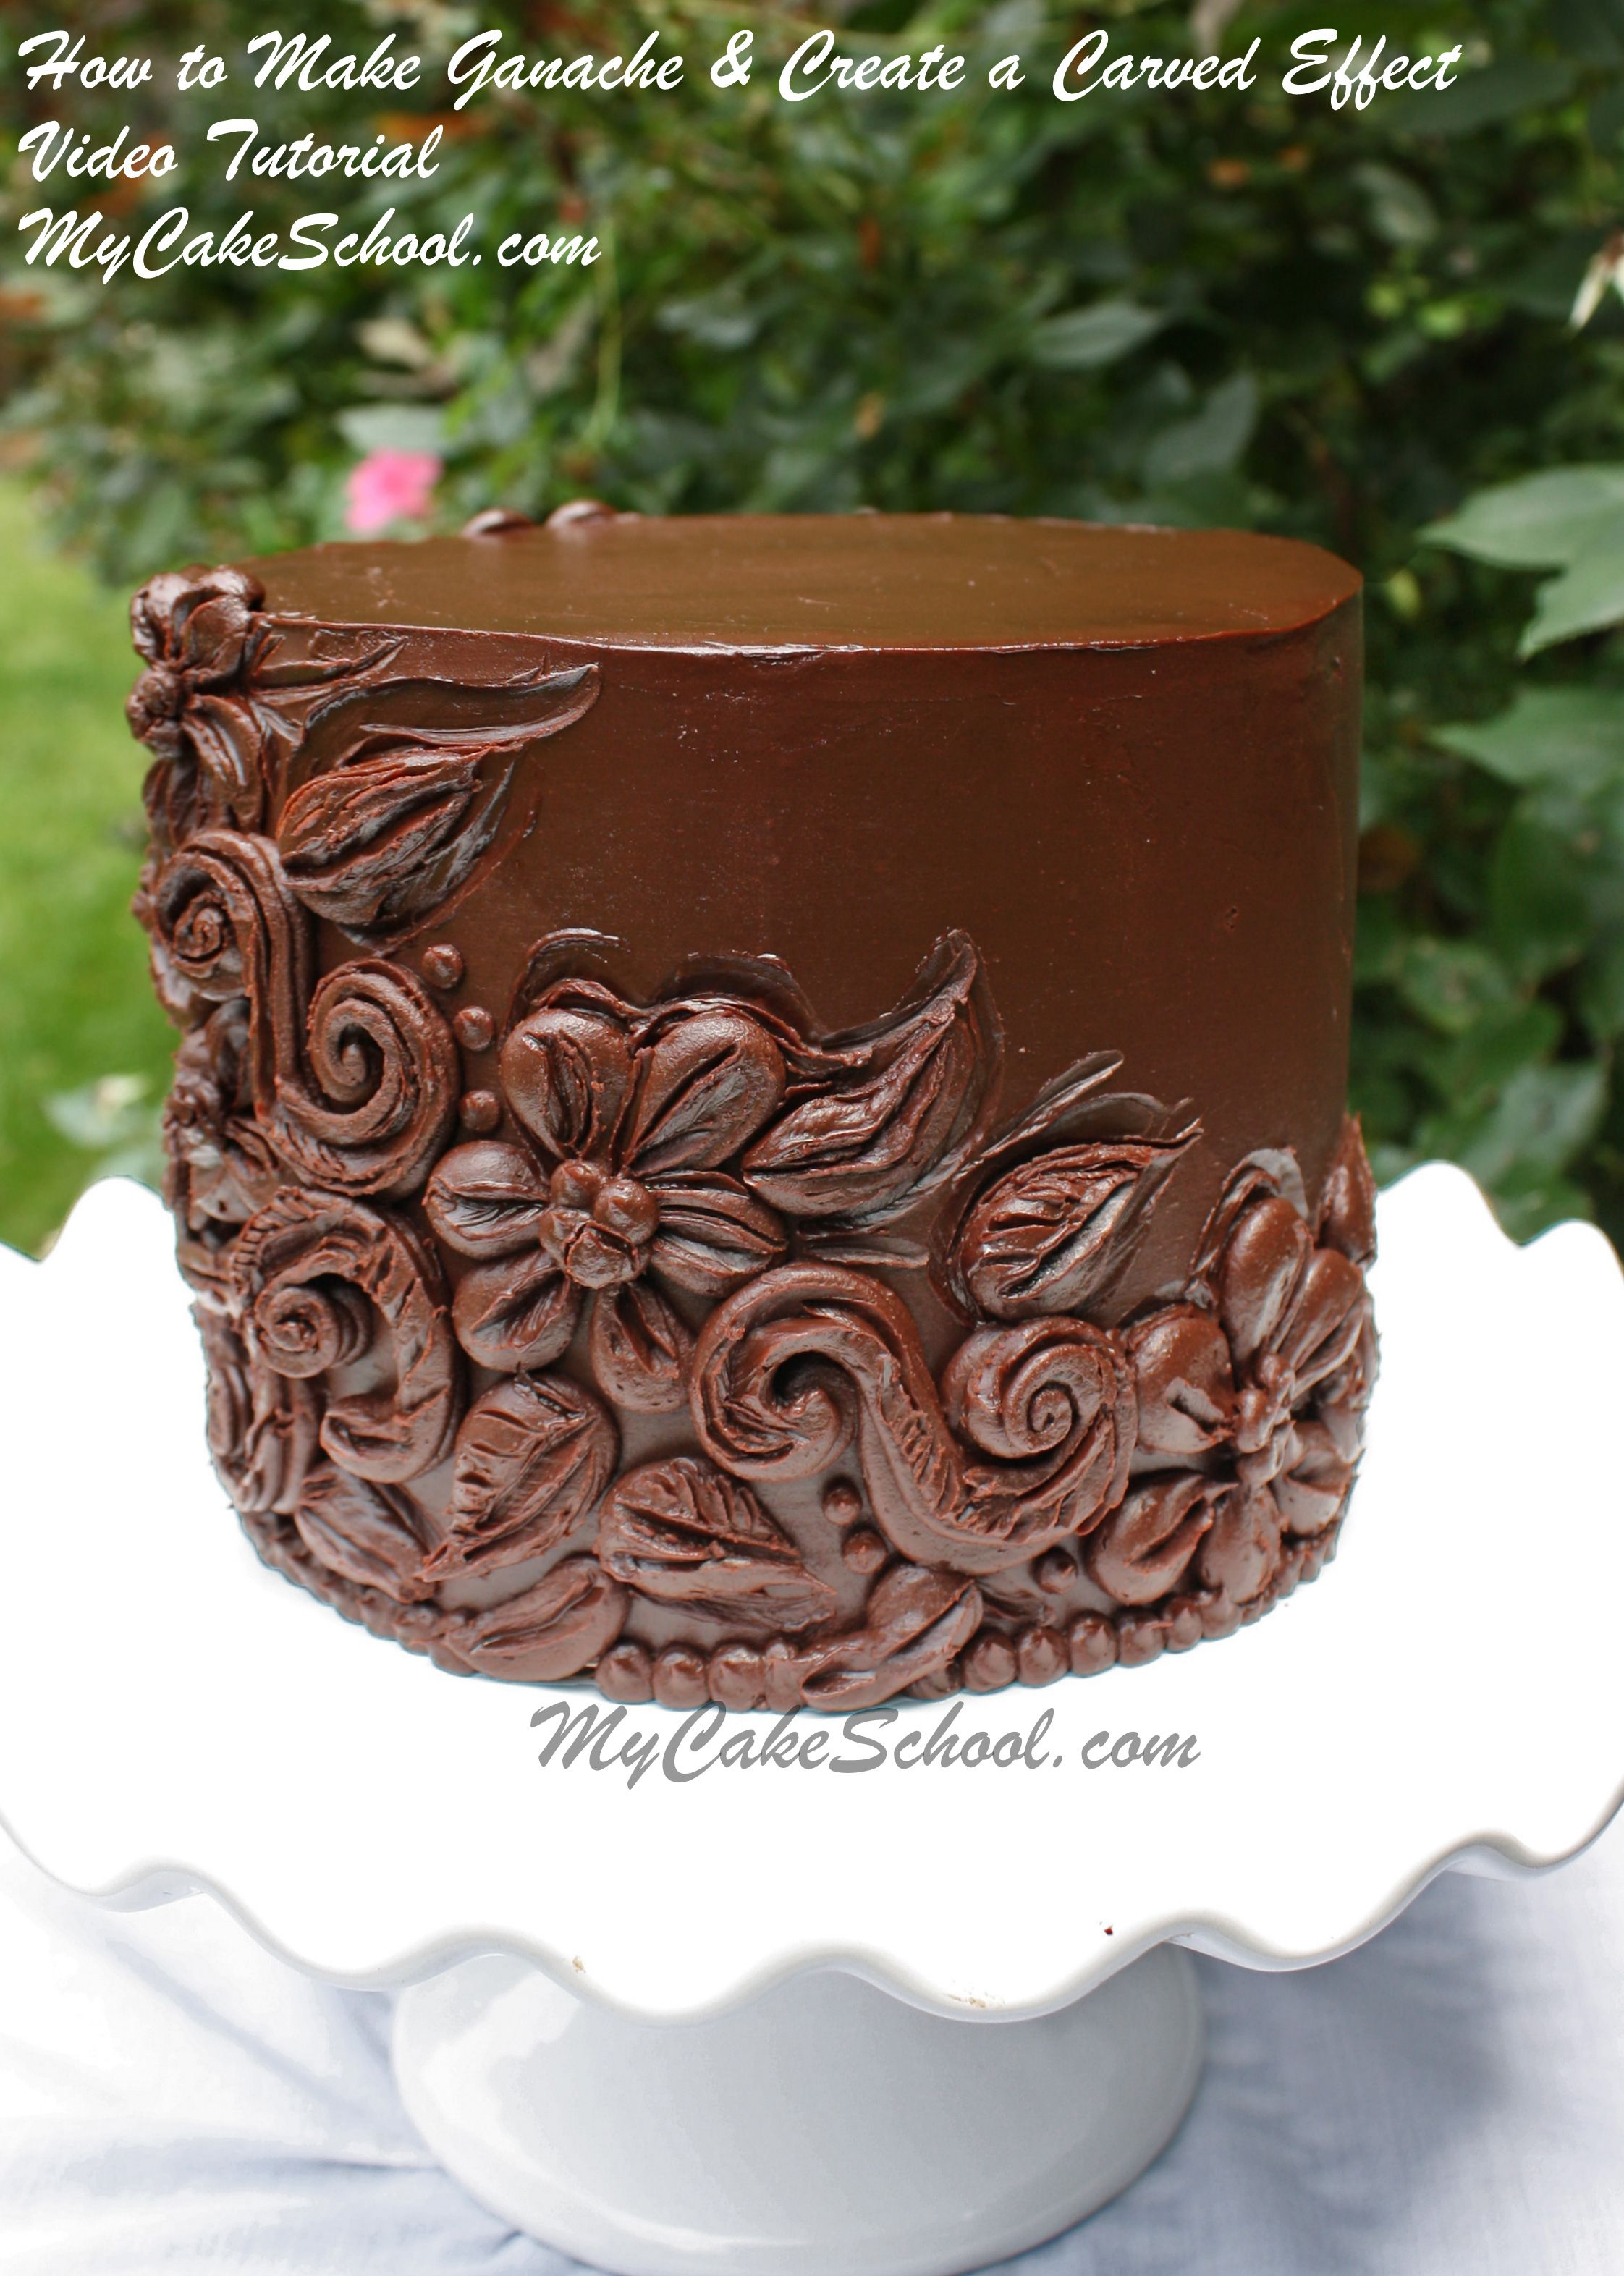 Birthday Cake Photos Chocolate Ganache : How to Make Ganache & Decorate with a Carved Effect ...